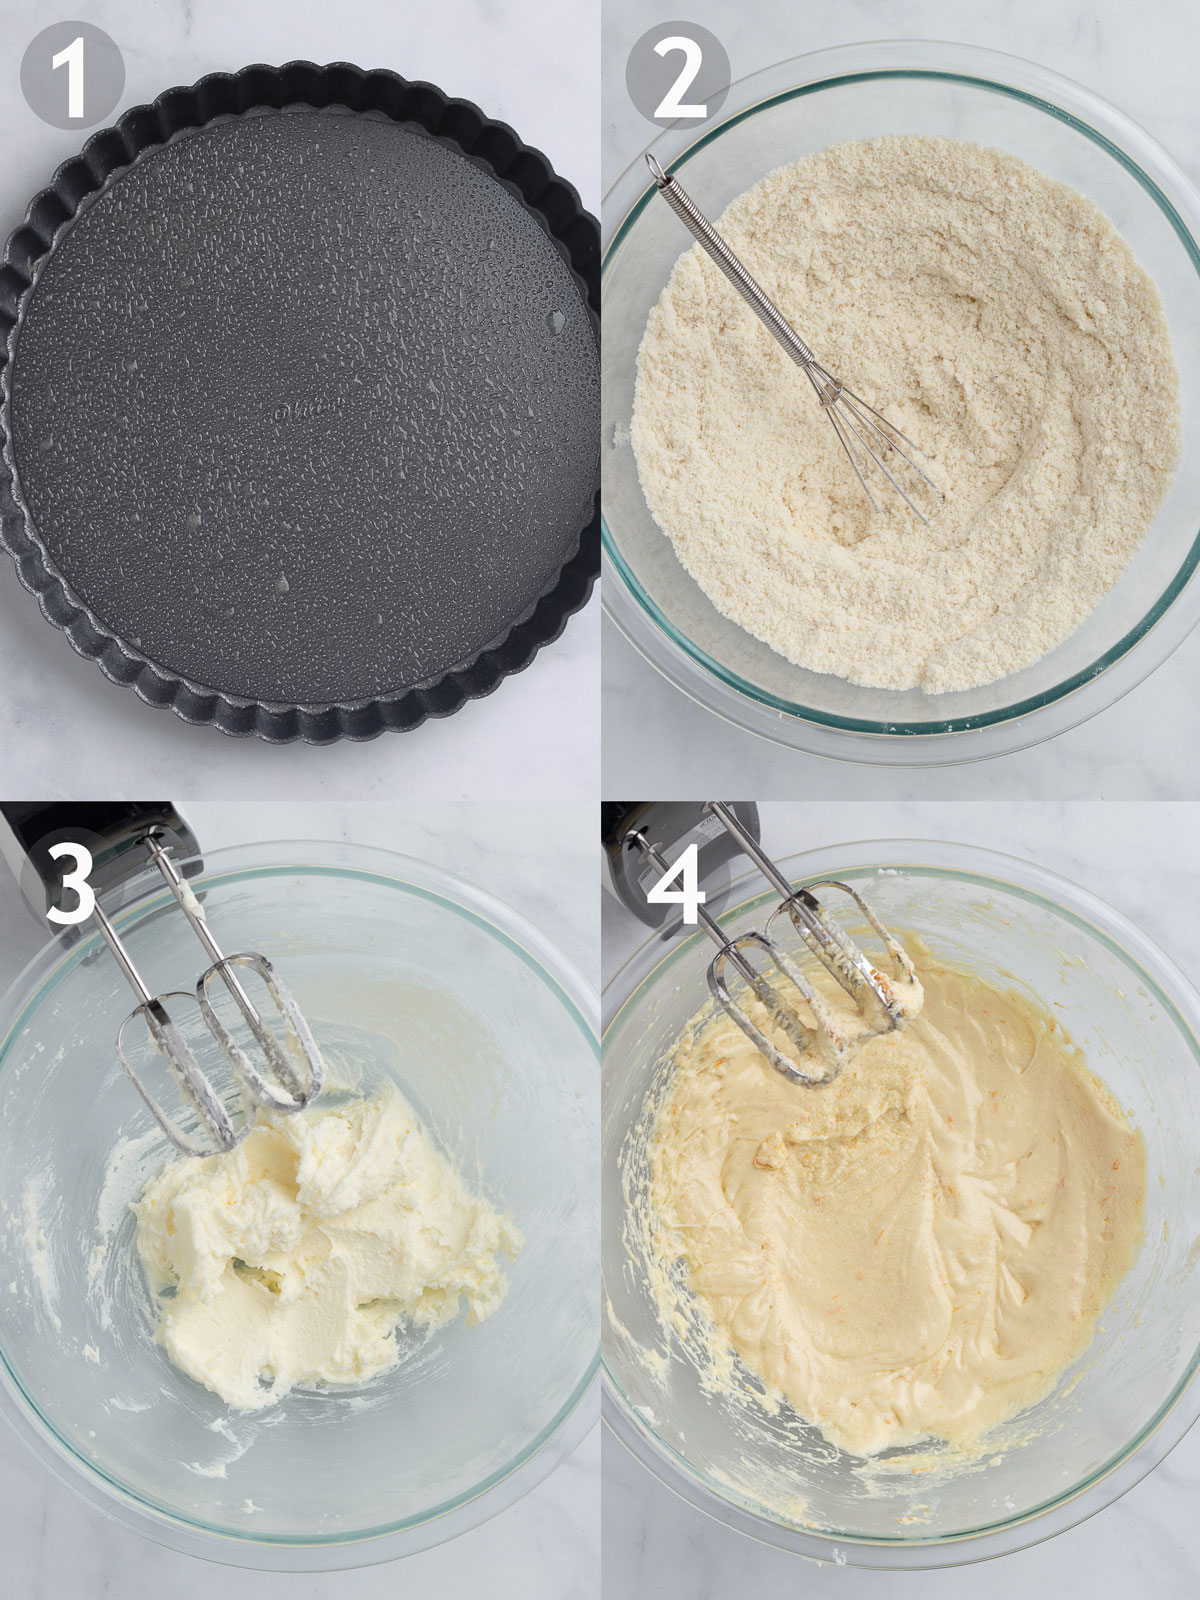 Cake steps 1-4 including greasing tart pan, whisking dry ingredients, and creaming butter, sugar and eggs.